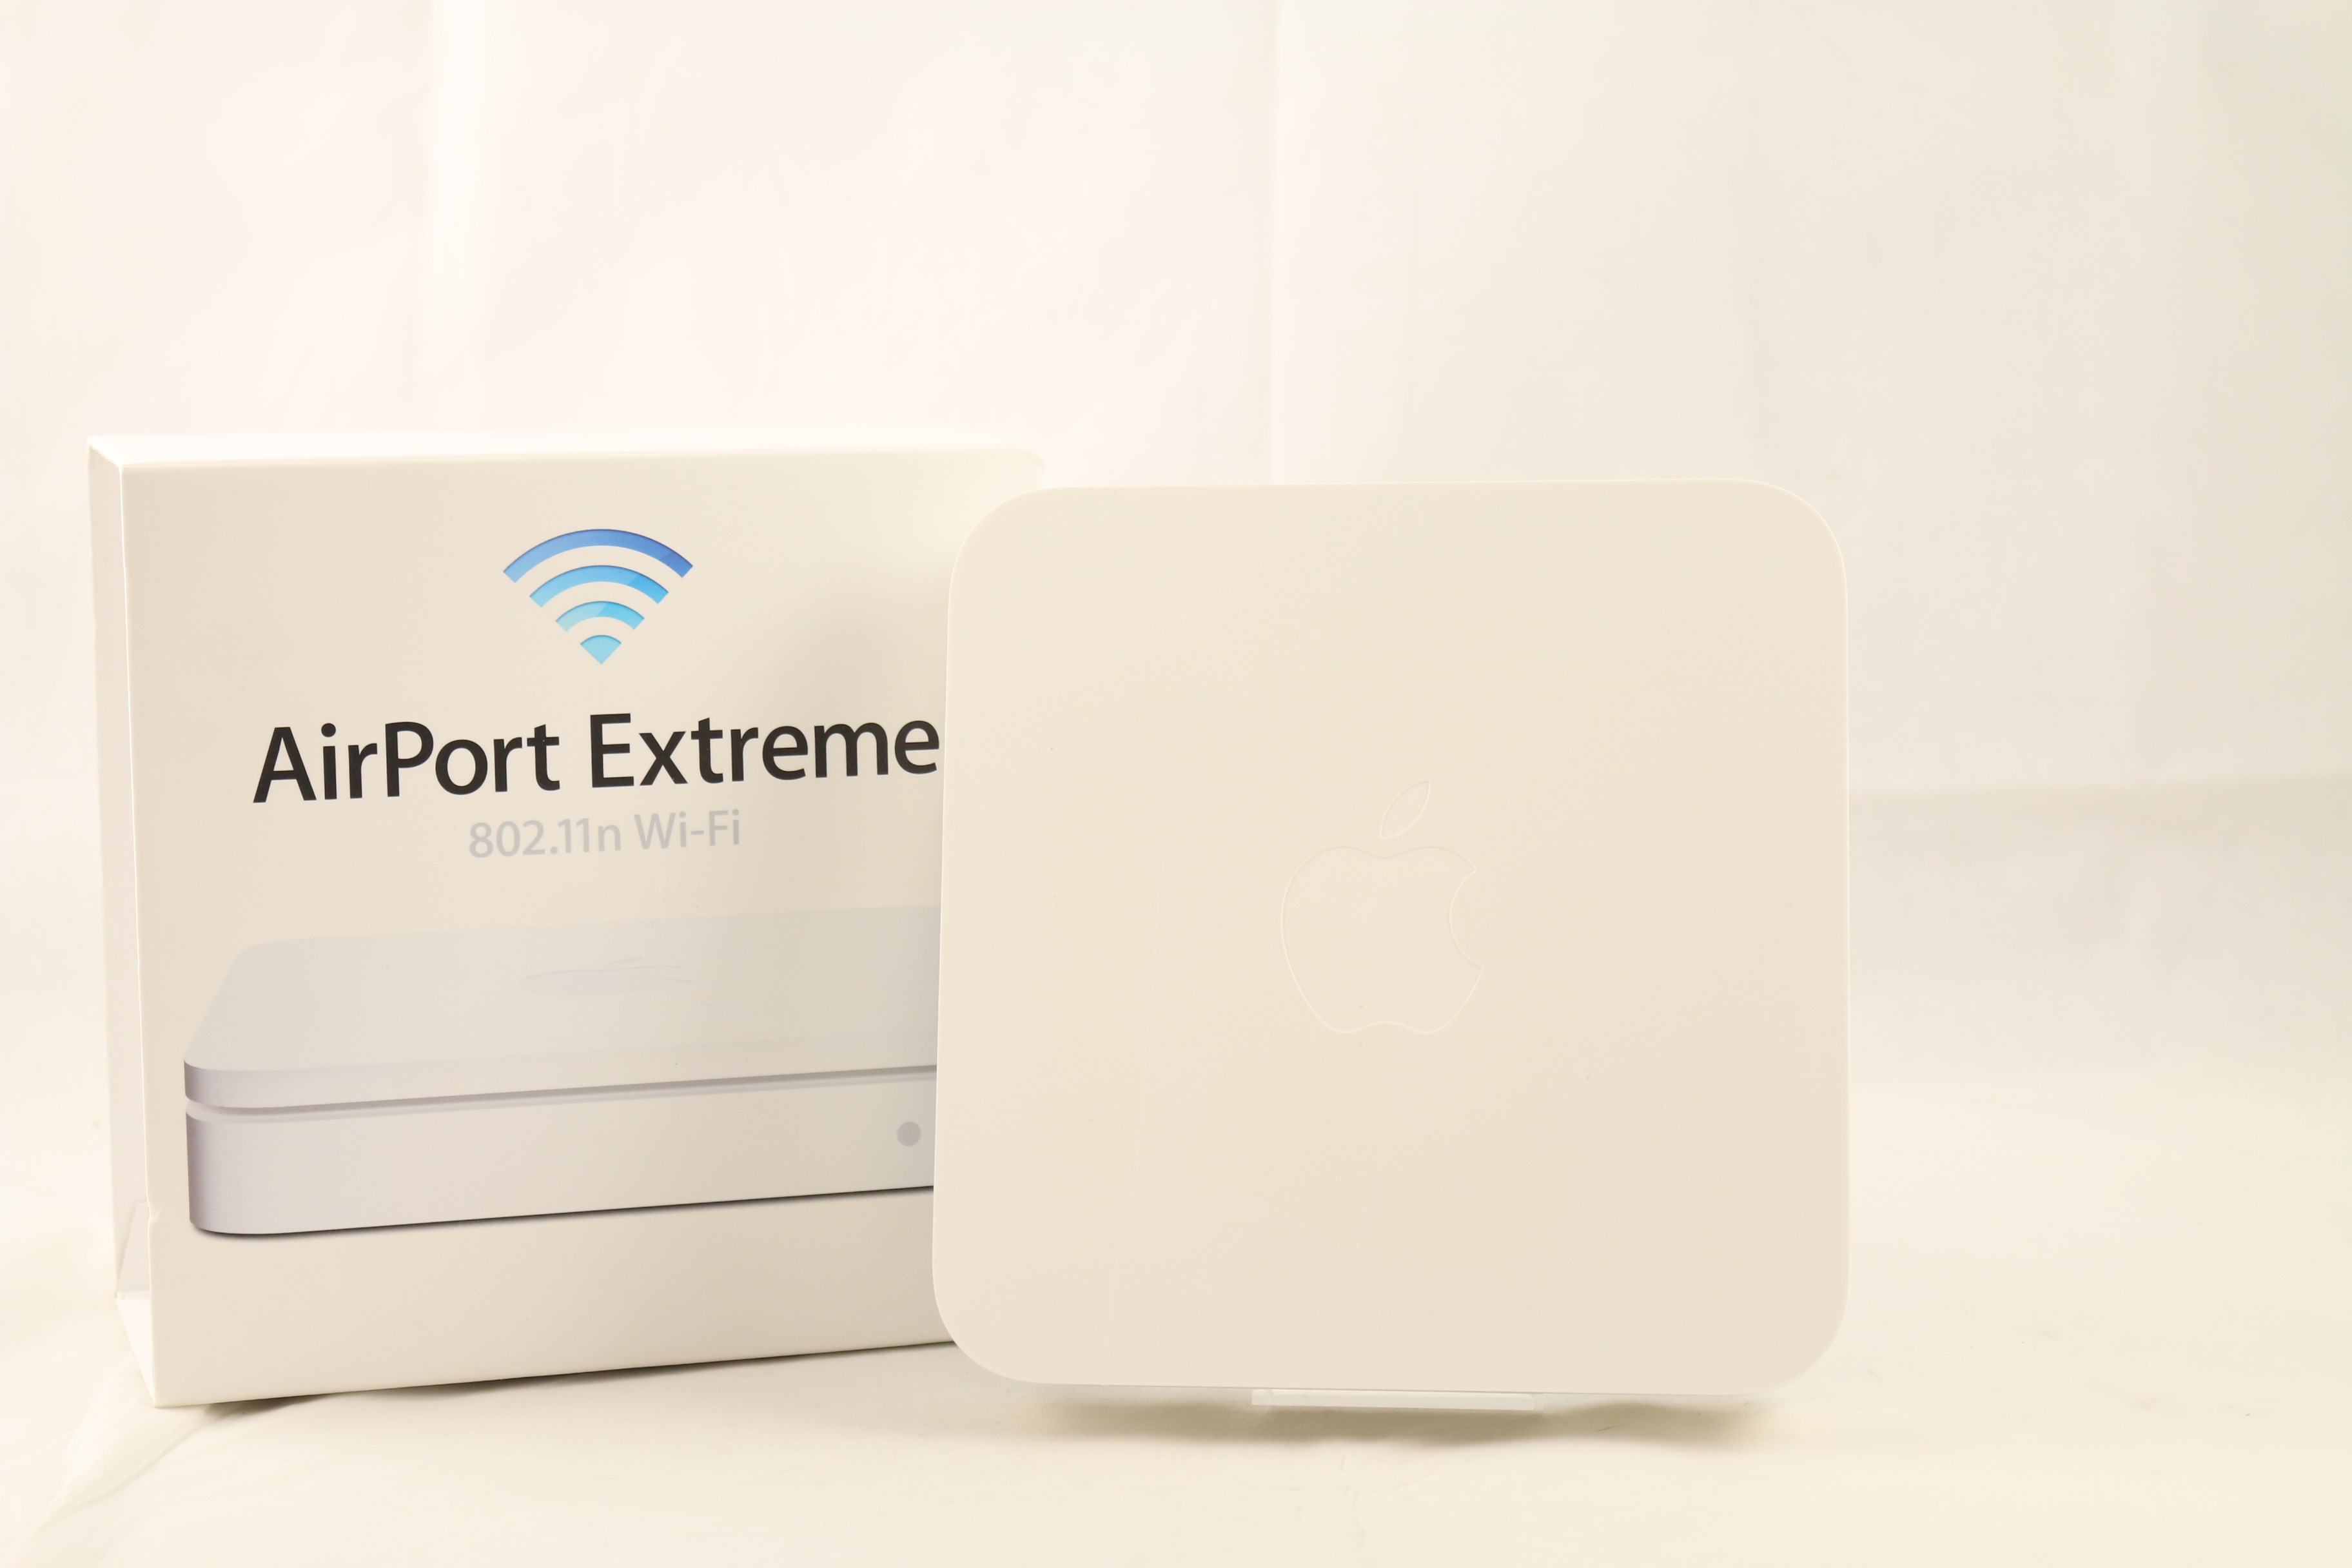 tariff apple airport extreme base station a1408 they cap